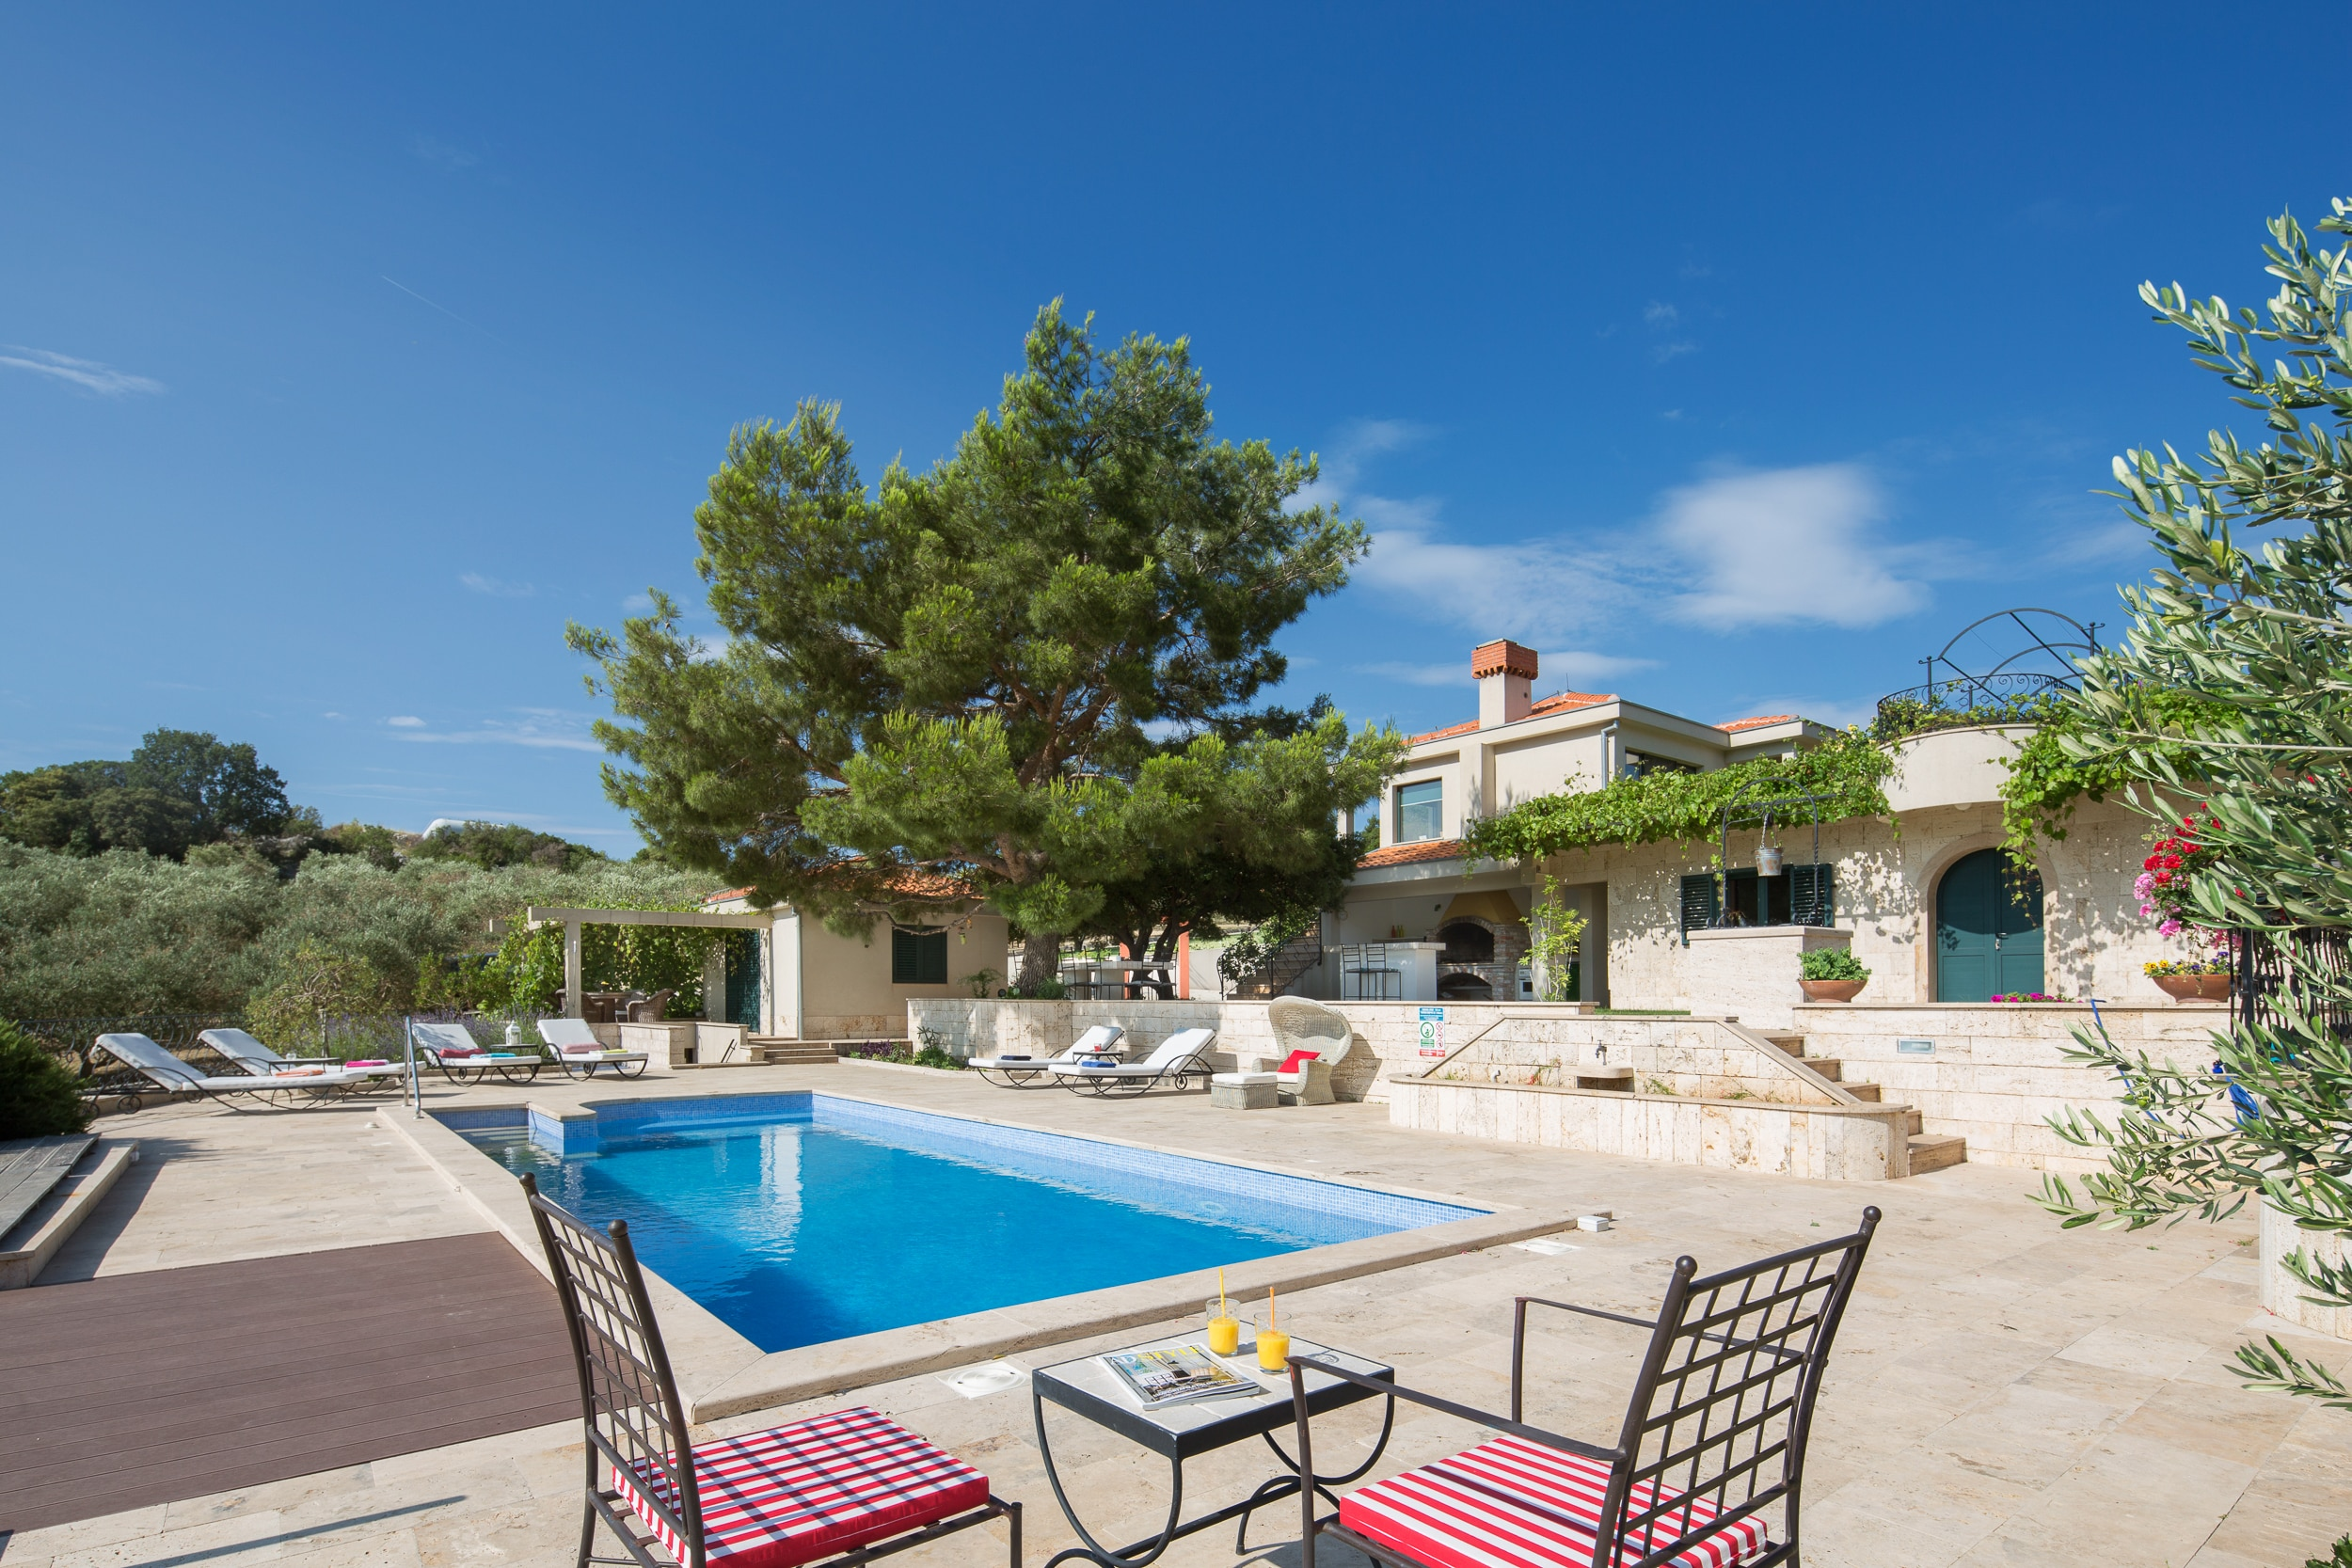 Property Image 2 - Picturesque Estate Surrounded by Olive Groves Perfect for Events